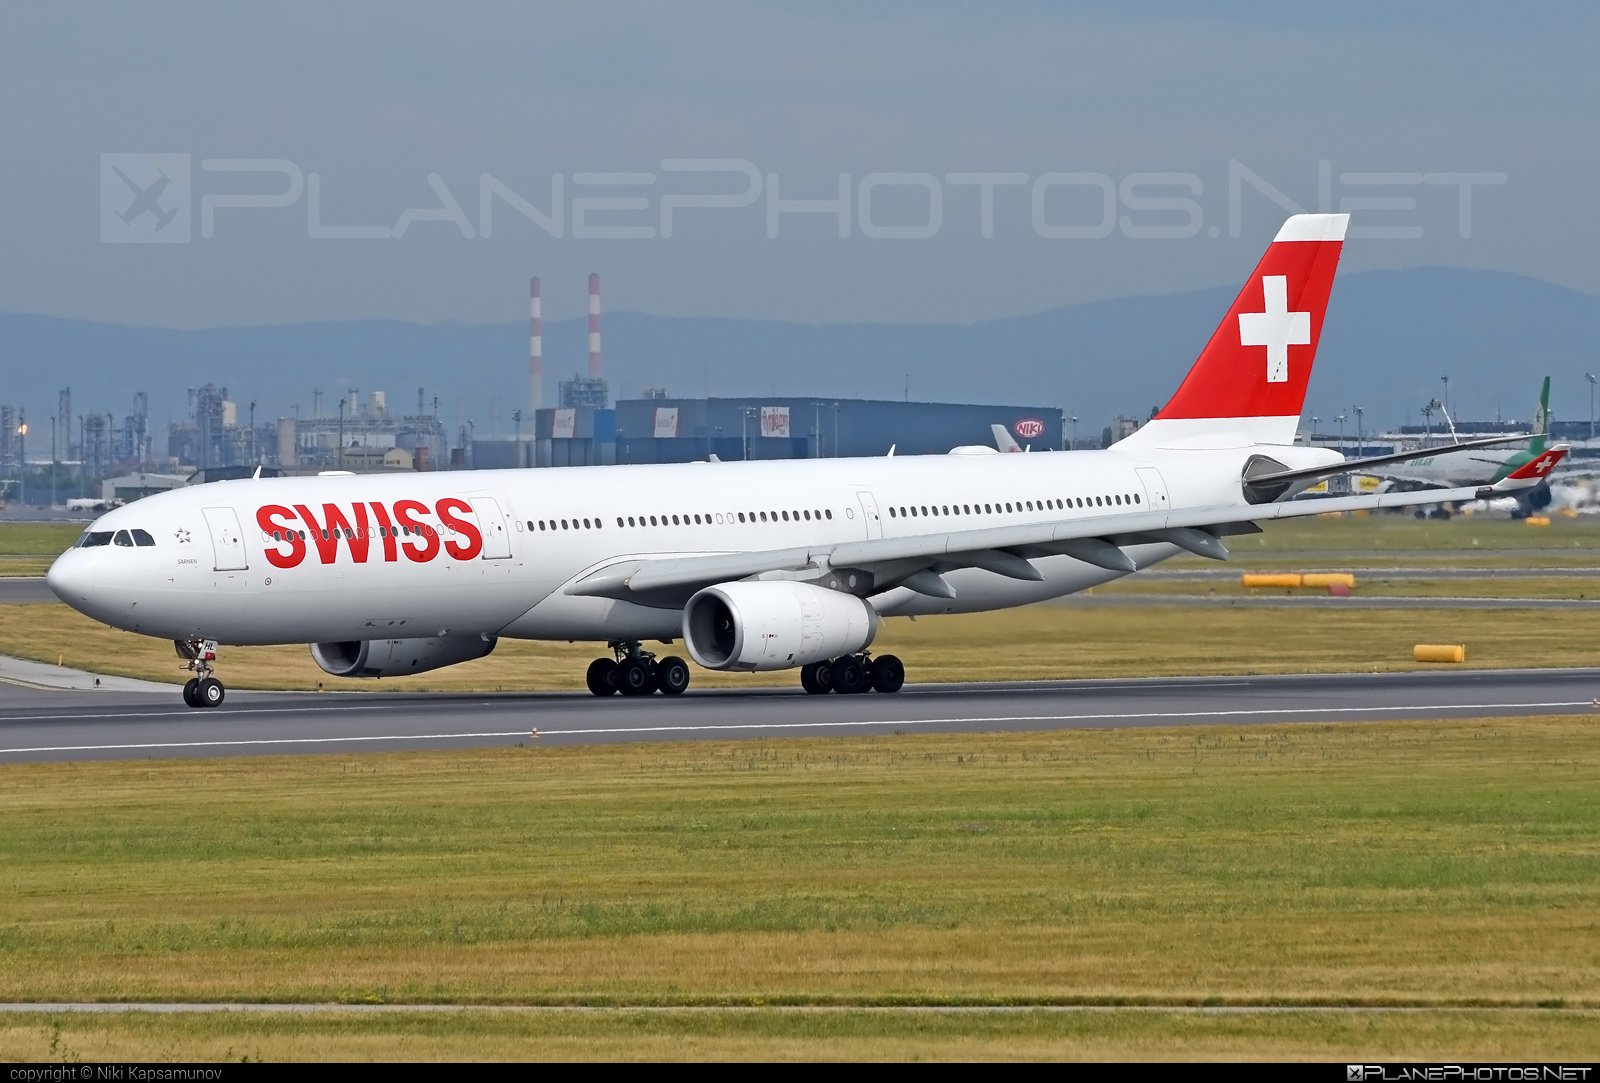 Airbus A330-343 - HB-JHL operated by Swiss International Air Lines #a330 #a330family #airbus #airbus330 #swiss #swissairlines